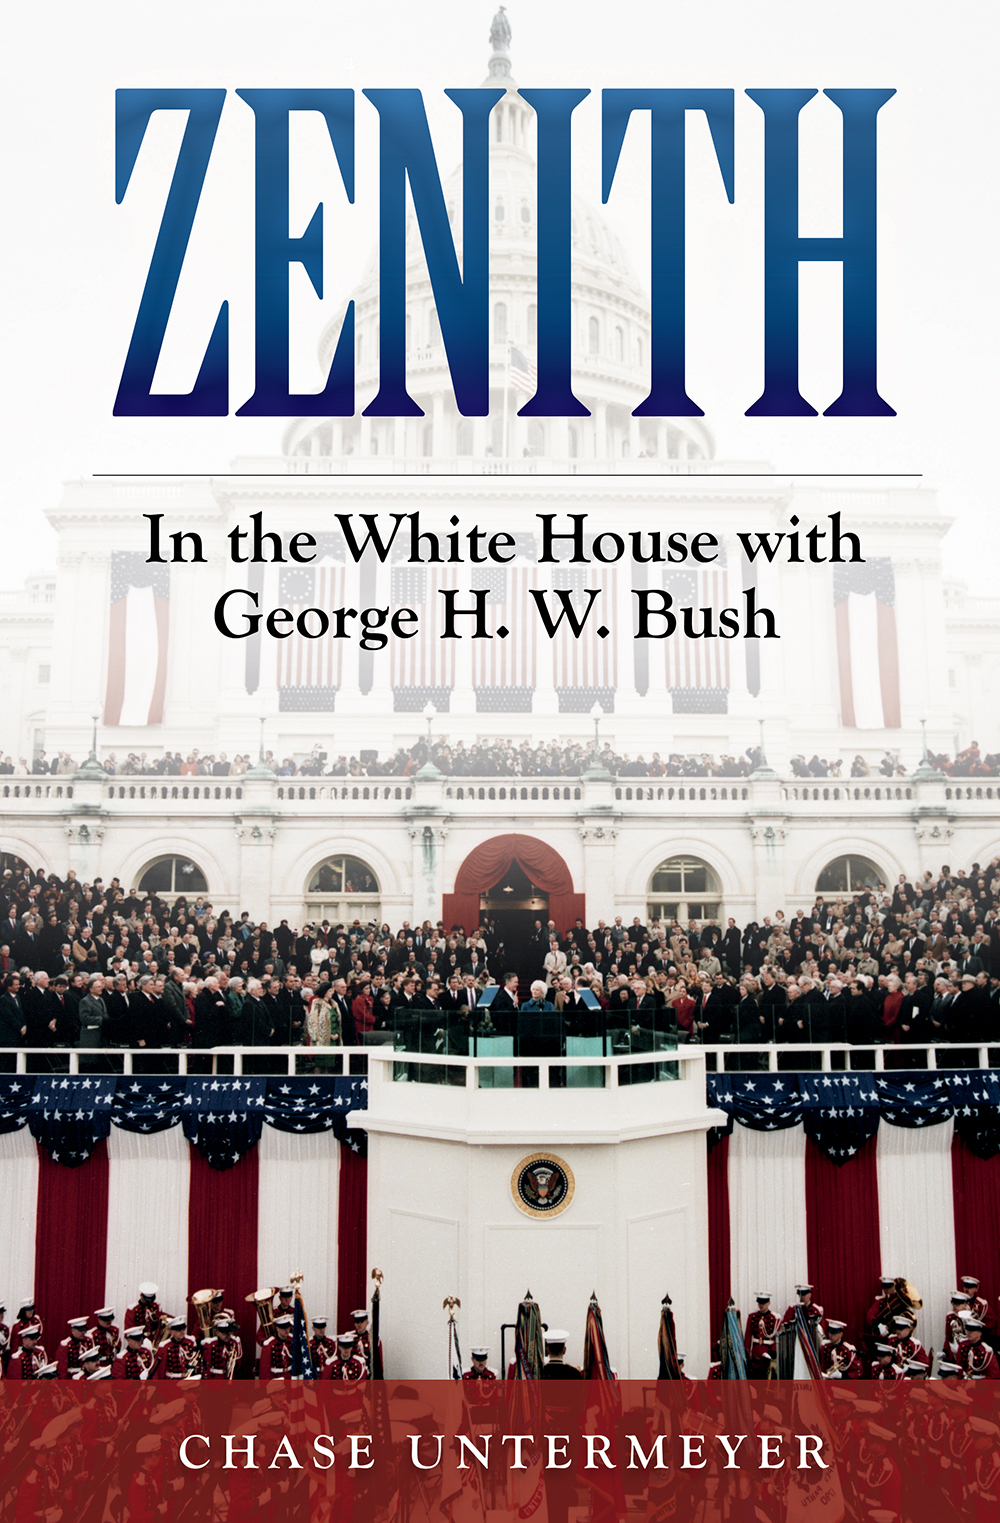 Zenith: In the White House with George H. W. Bush